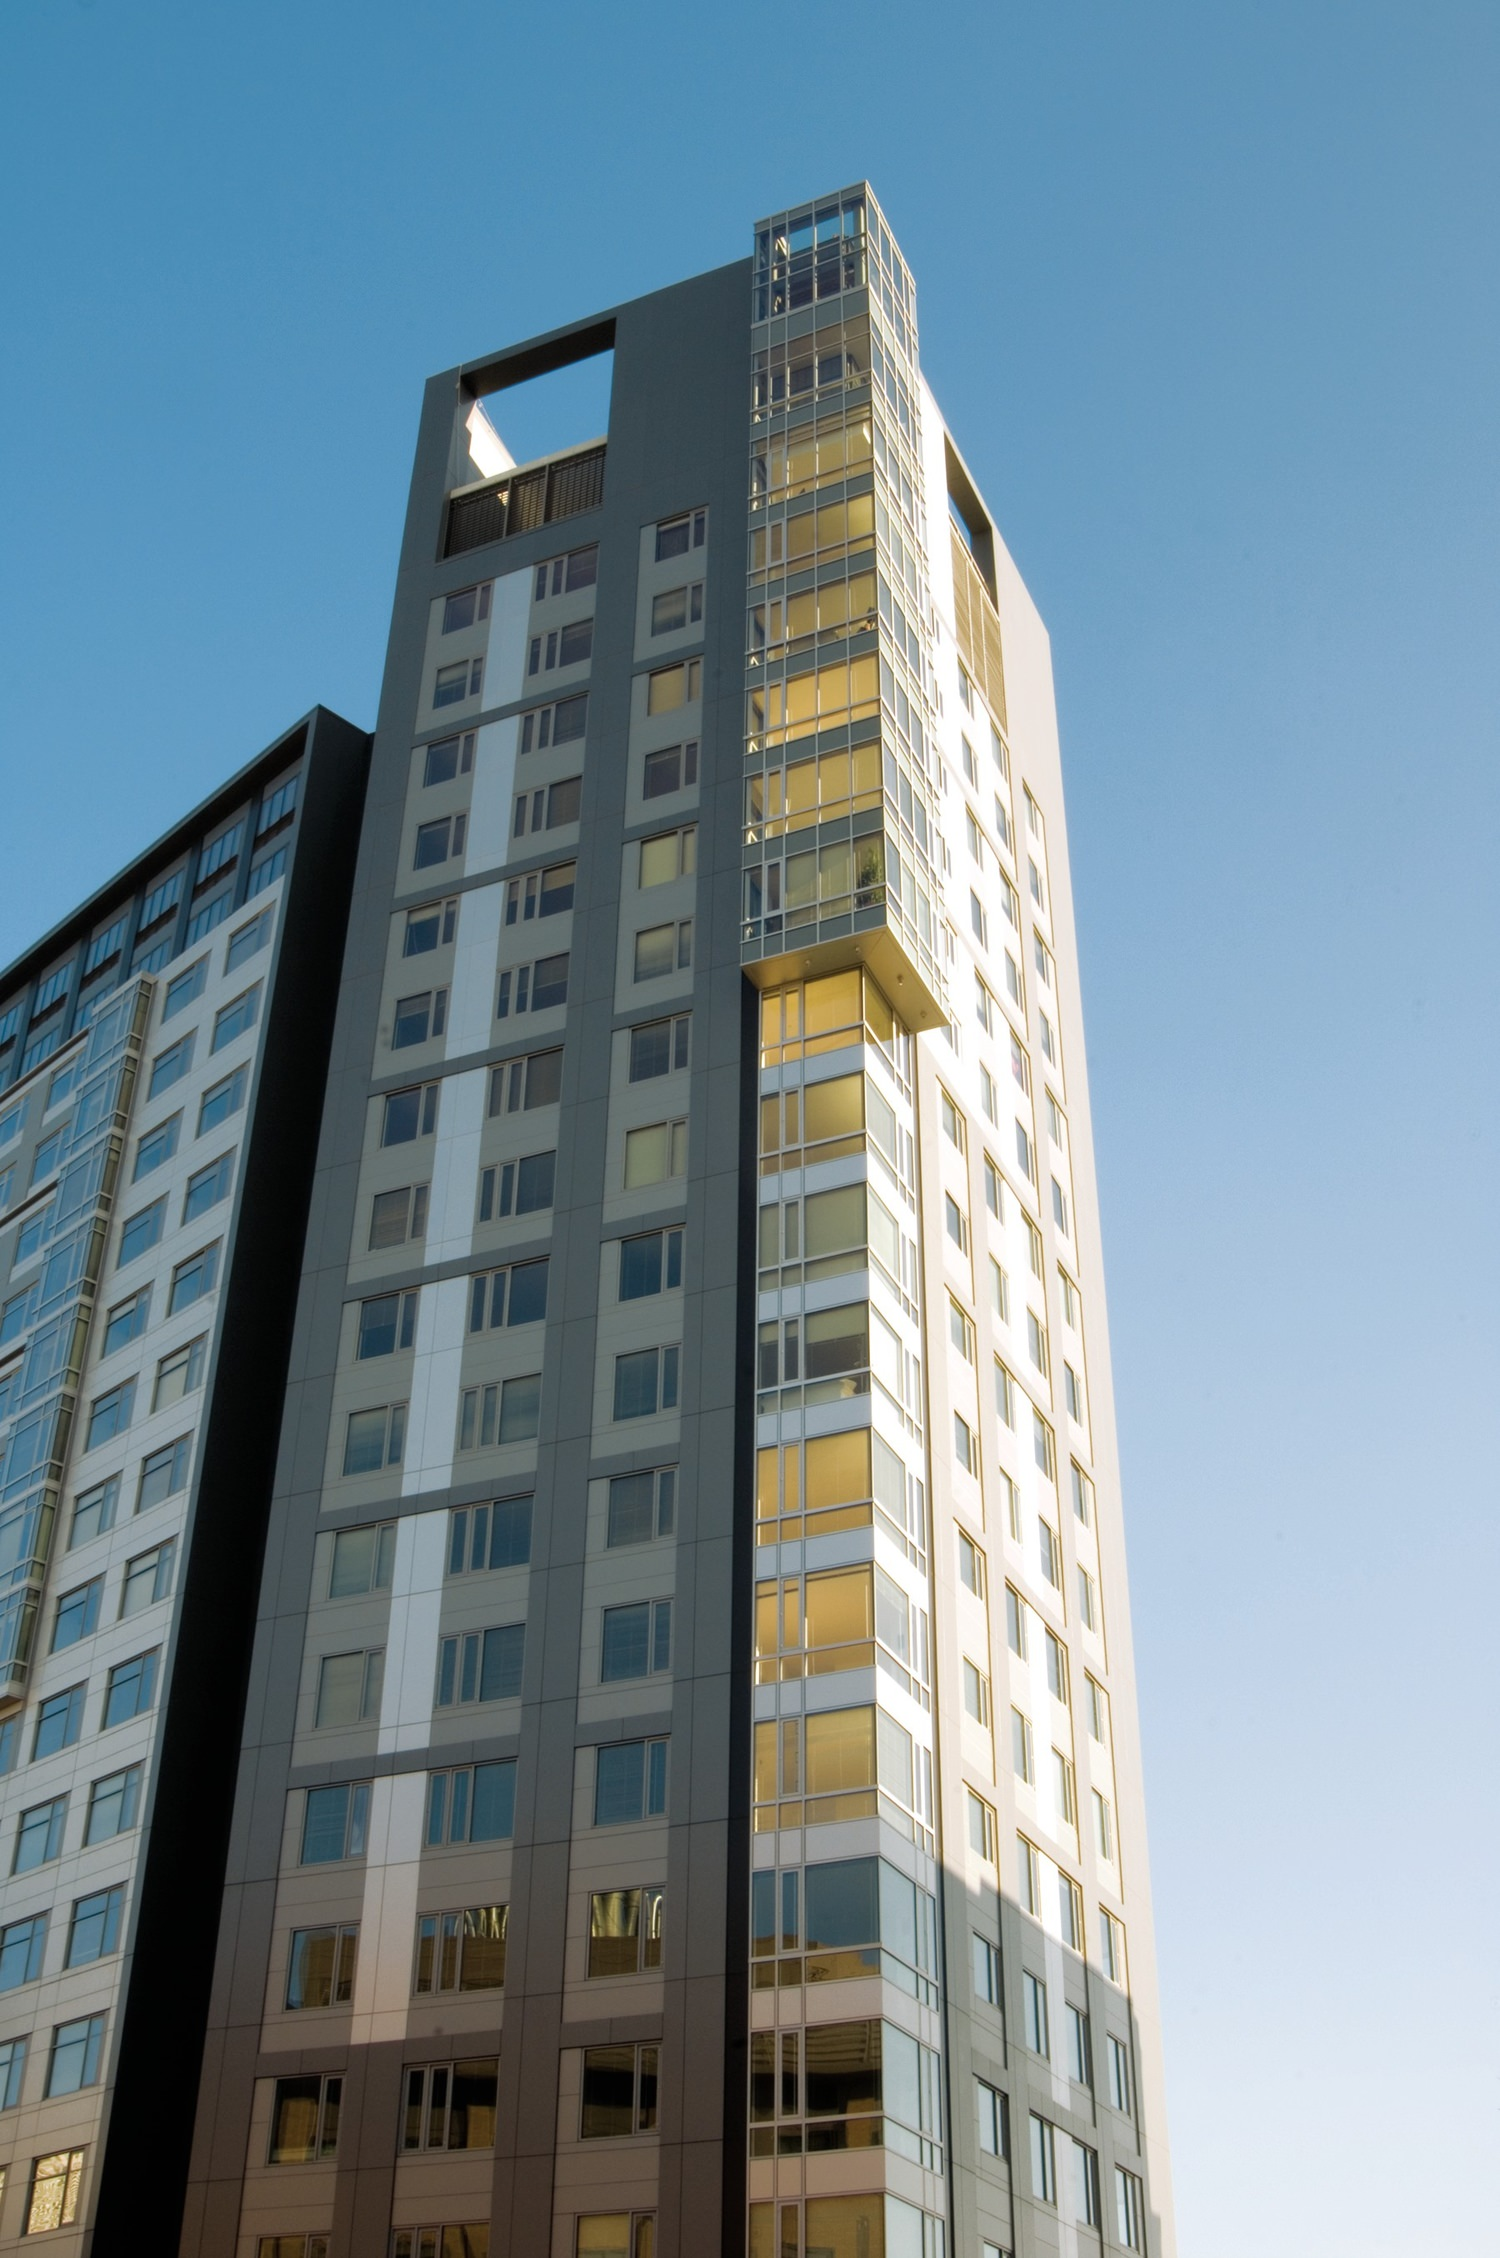 A large apartment building that is next to a tower under the blue sky in the city.